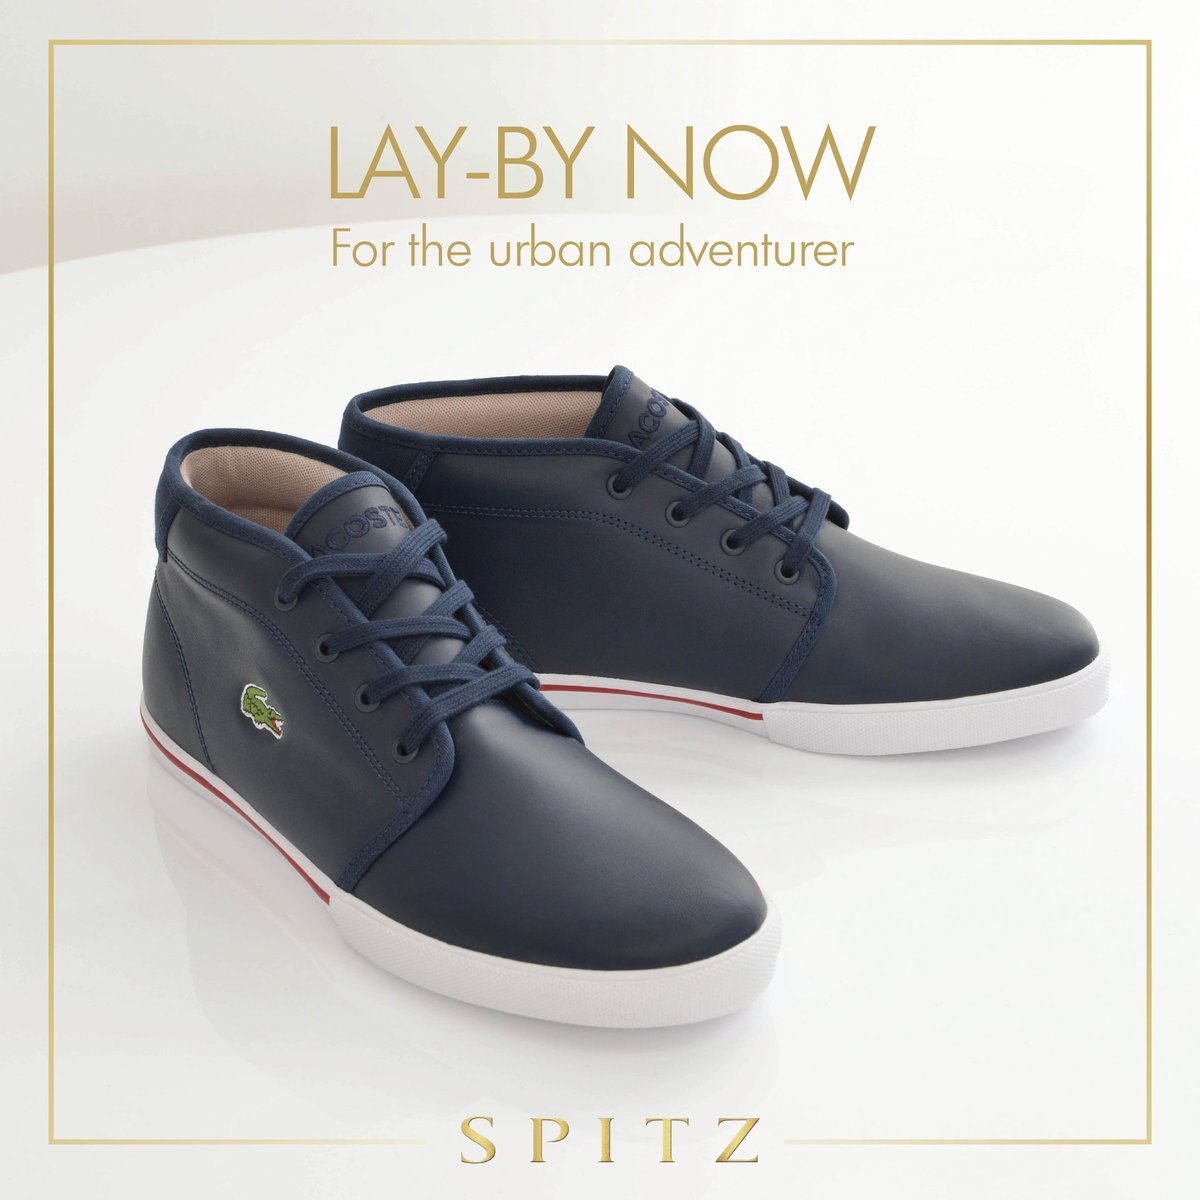 Lay-by a Lacoste Ampthill